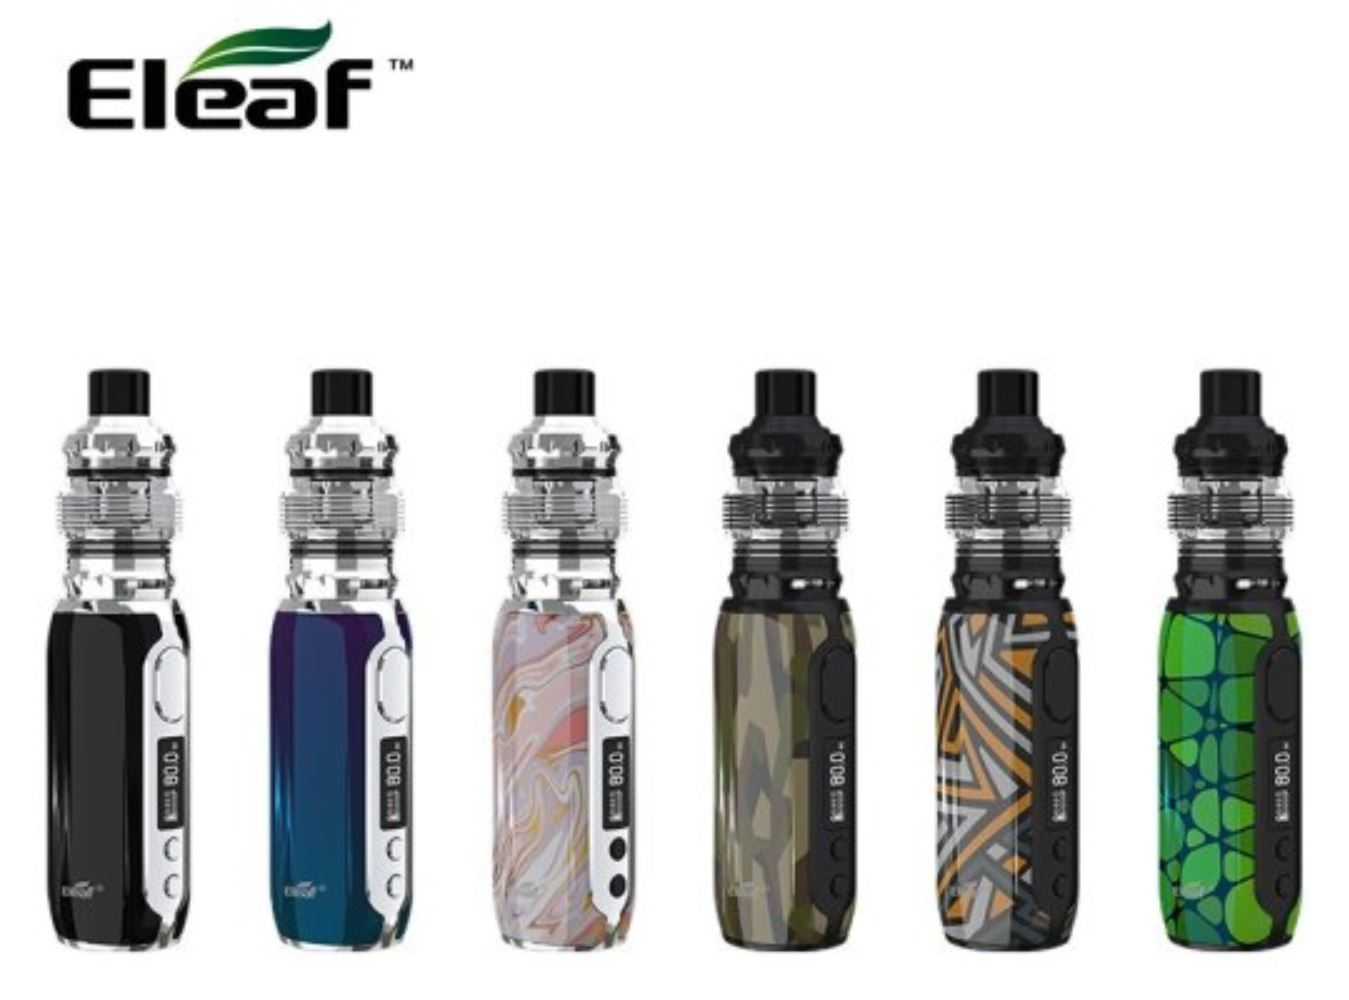 iSmoka-Eleaf iStick Rim Grip Full Kit 3000mAh Rainbow 1ks